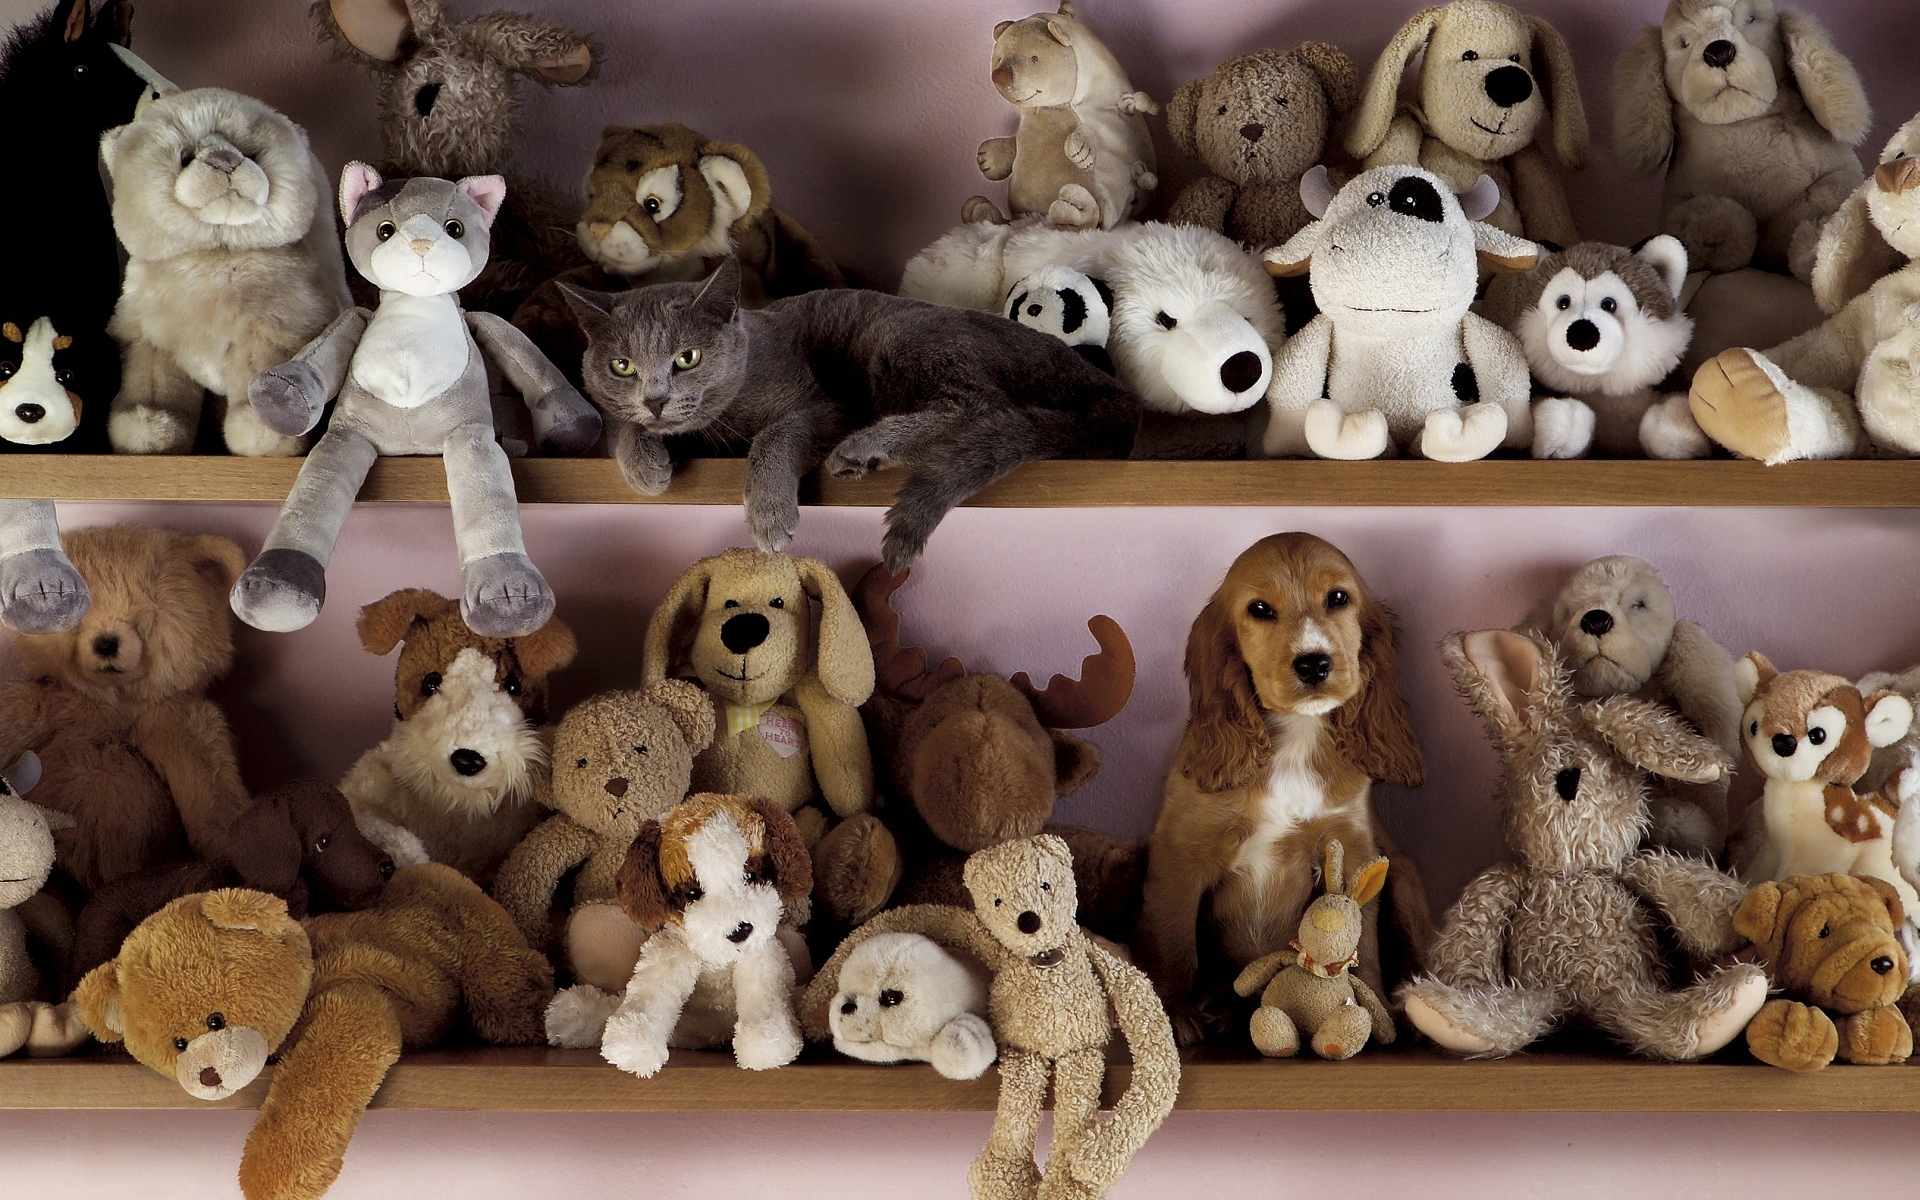 http://www.zarrintrade.com/wp-content/uploads/2014/04/toys_dog_cat_shelf_71891_1920x1200.jpg